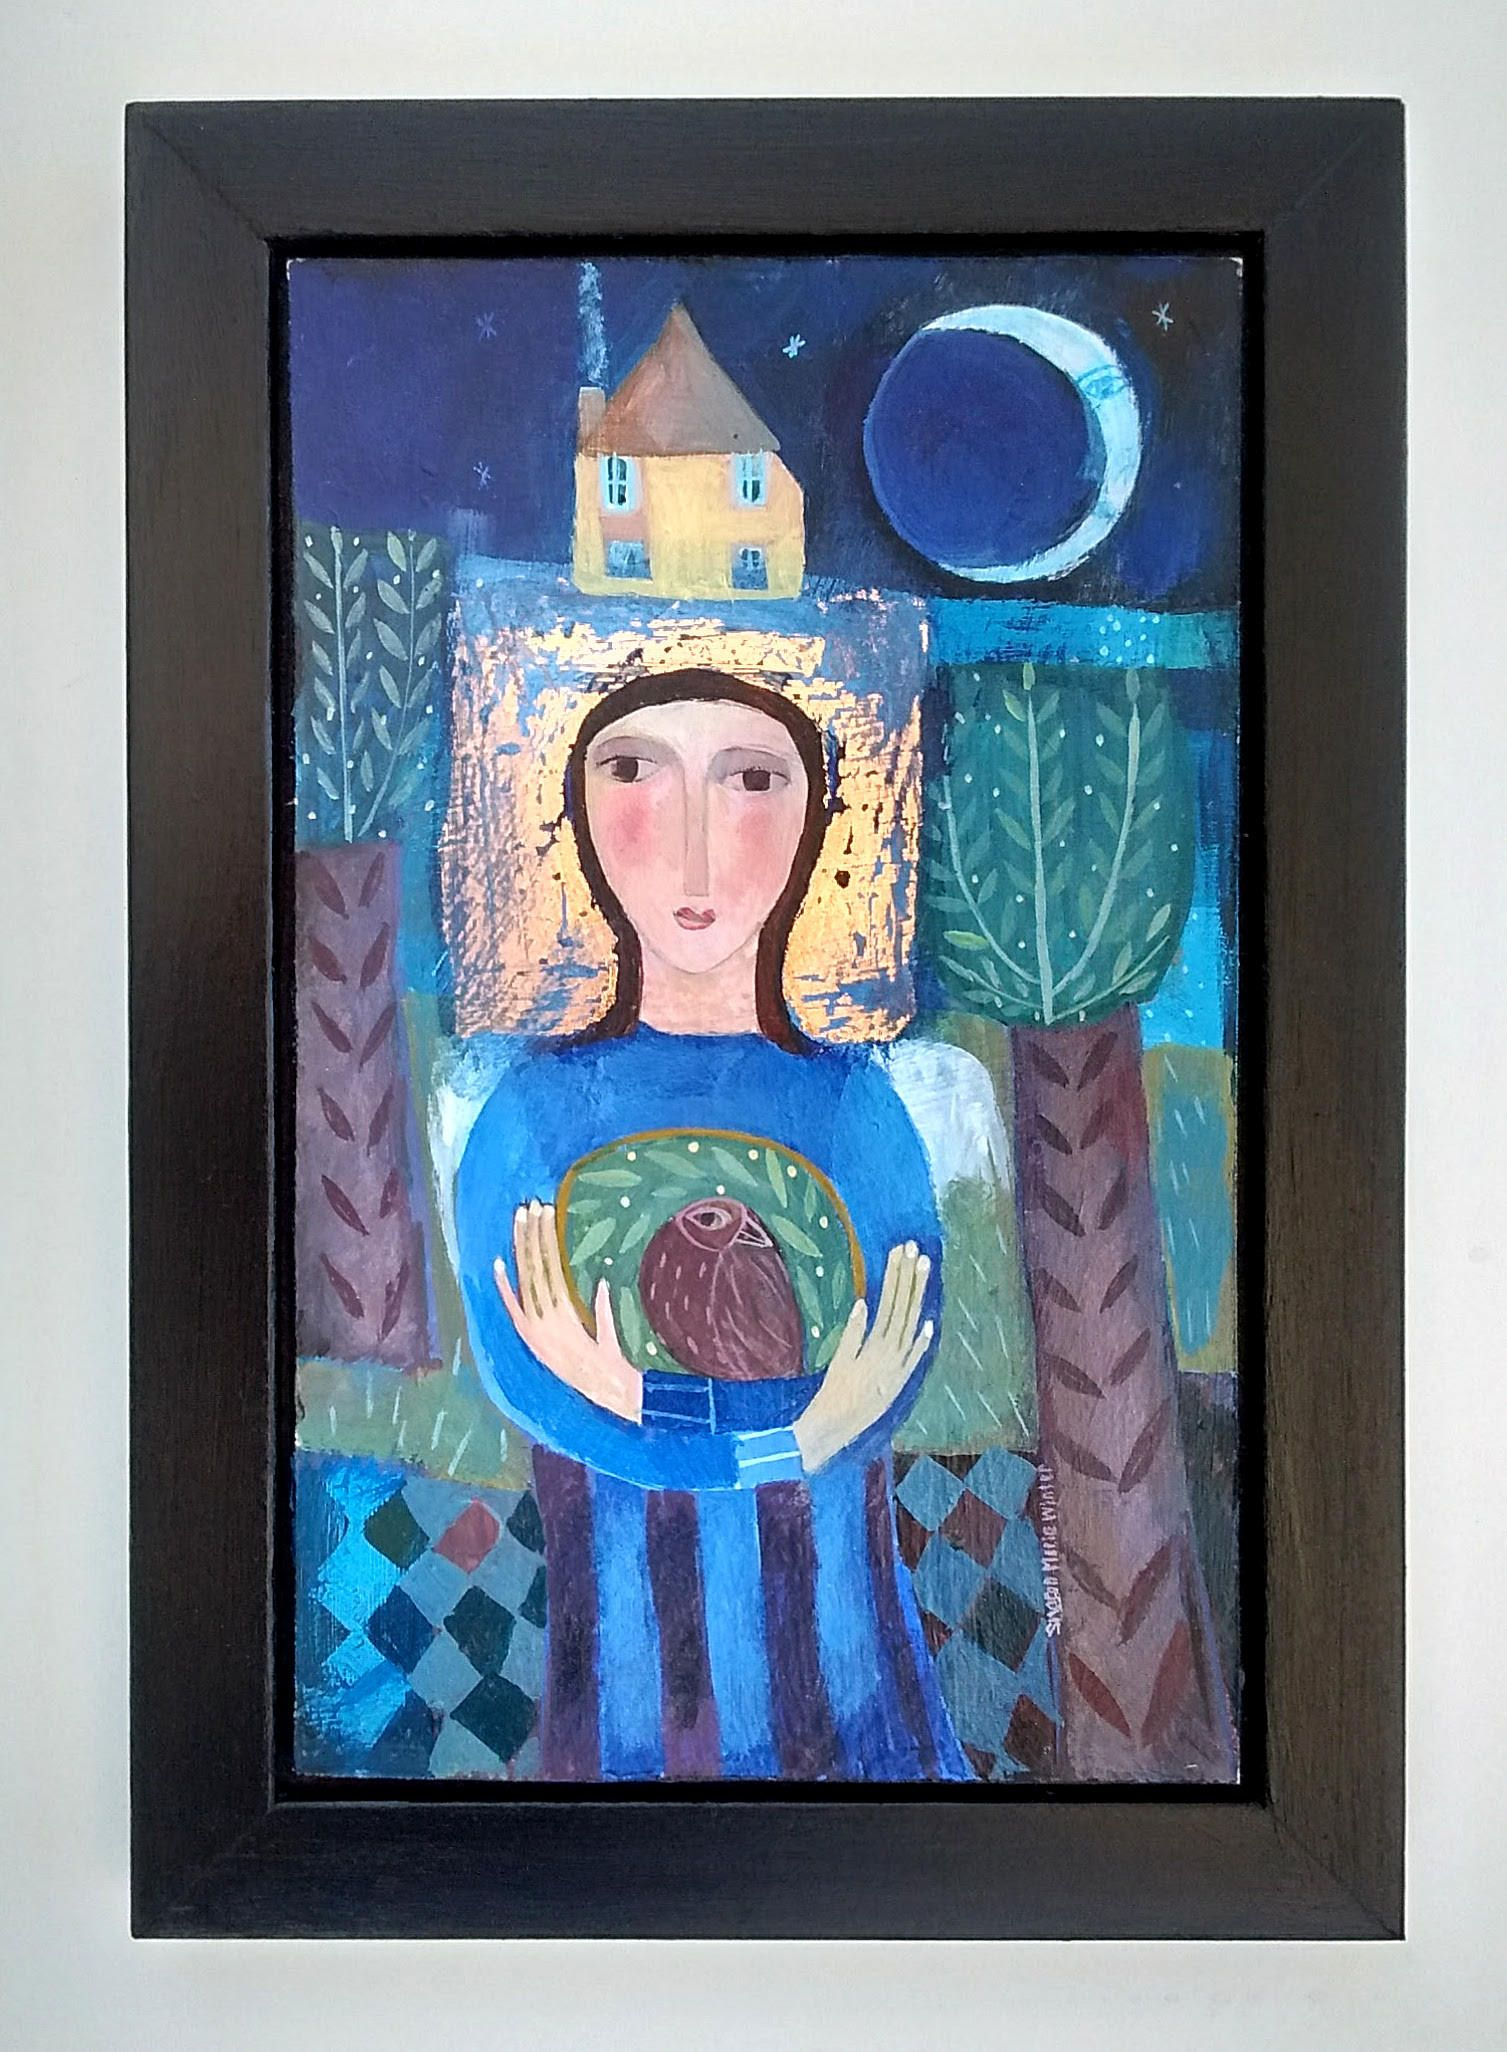 Bird Woman in the moonlight, original acrylic painting in wooden frame by SharonMarieWinter on Etsy